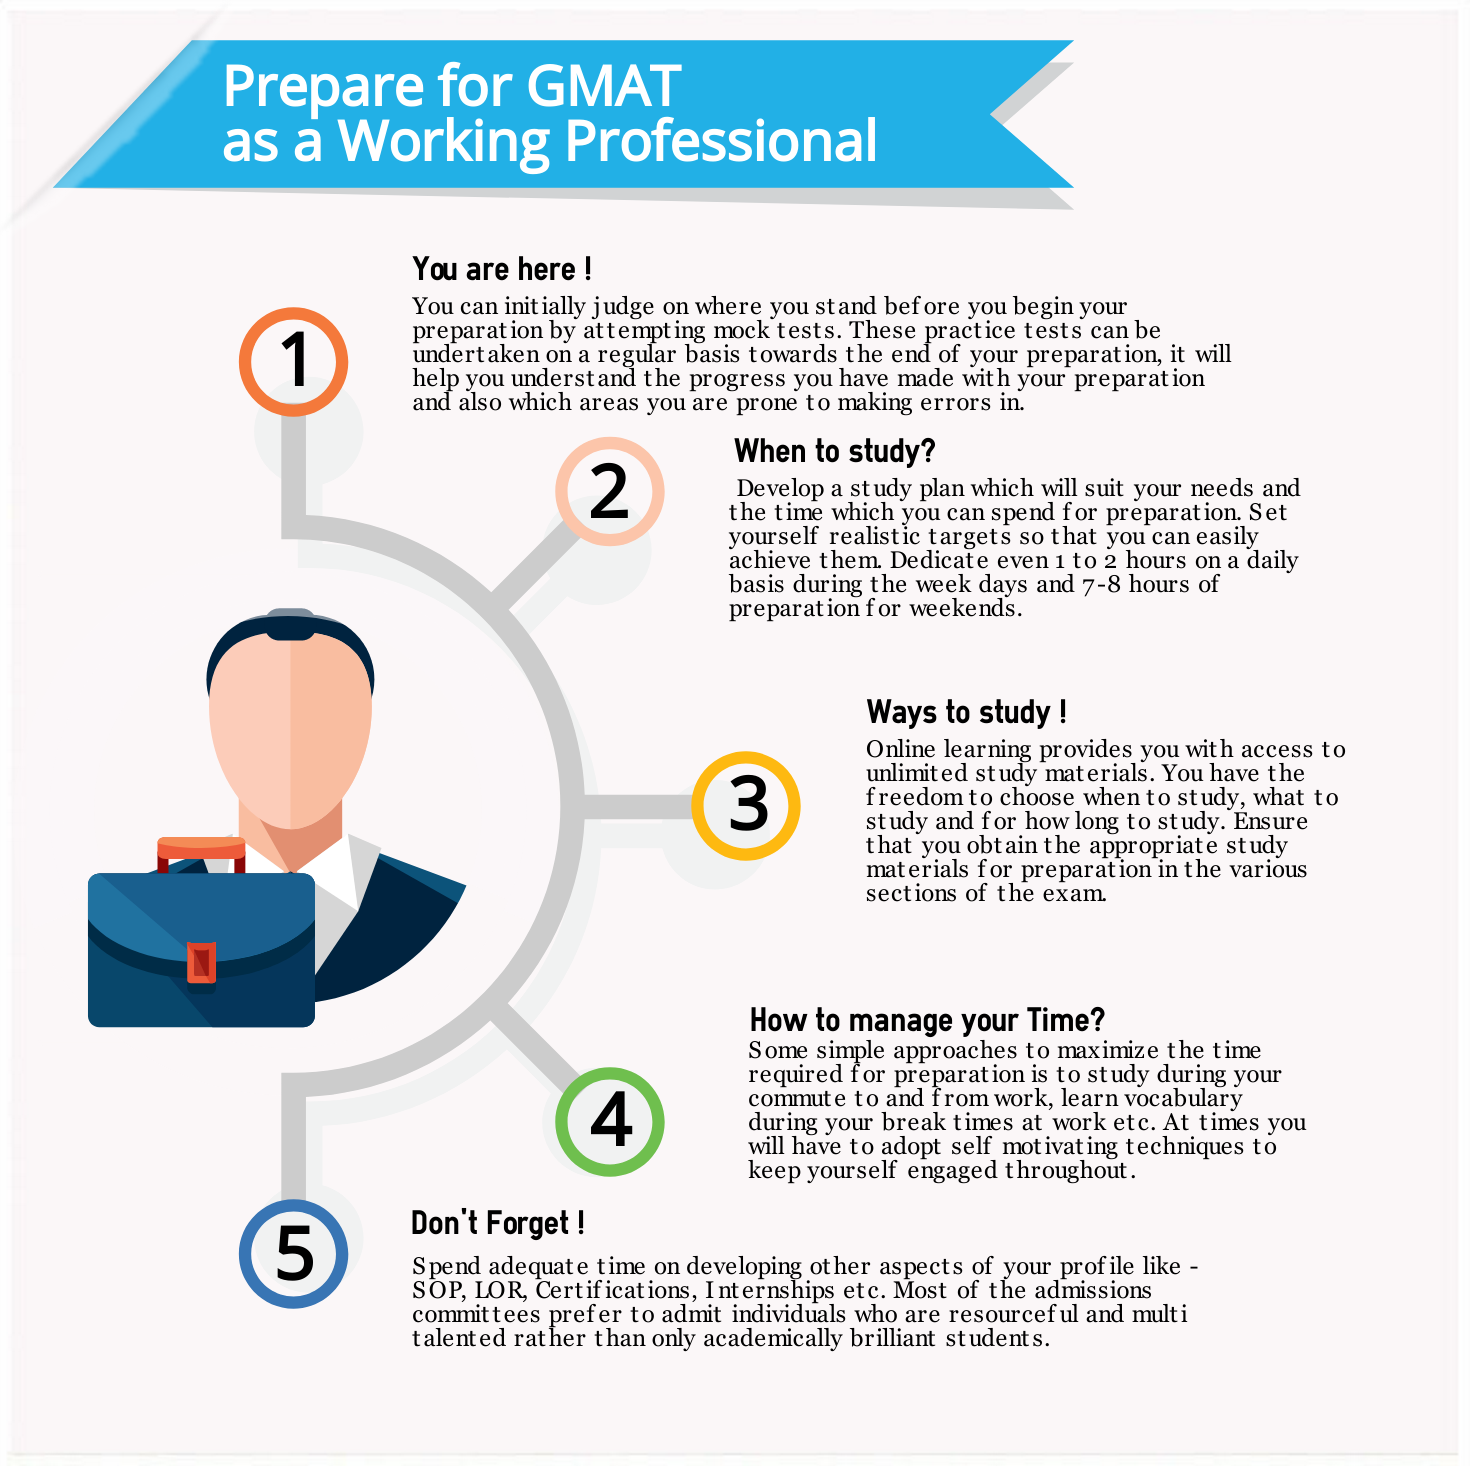 prepare for GMAT as a working professional